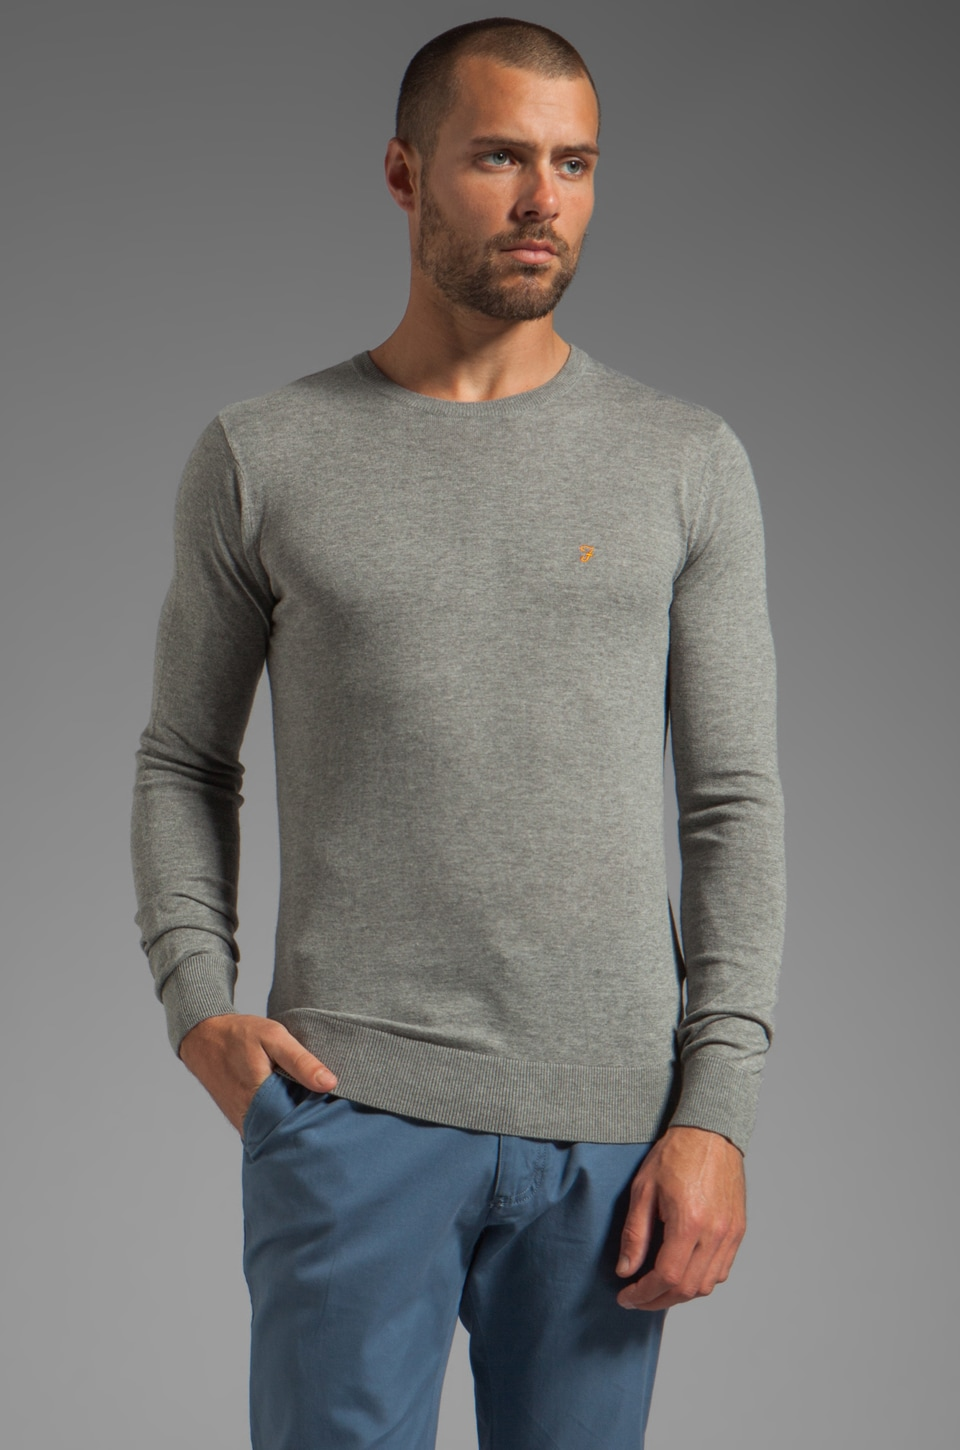 FARAH VINTAGE Fontaine Crew Neck Knit in Grey Marl